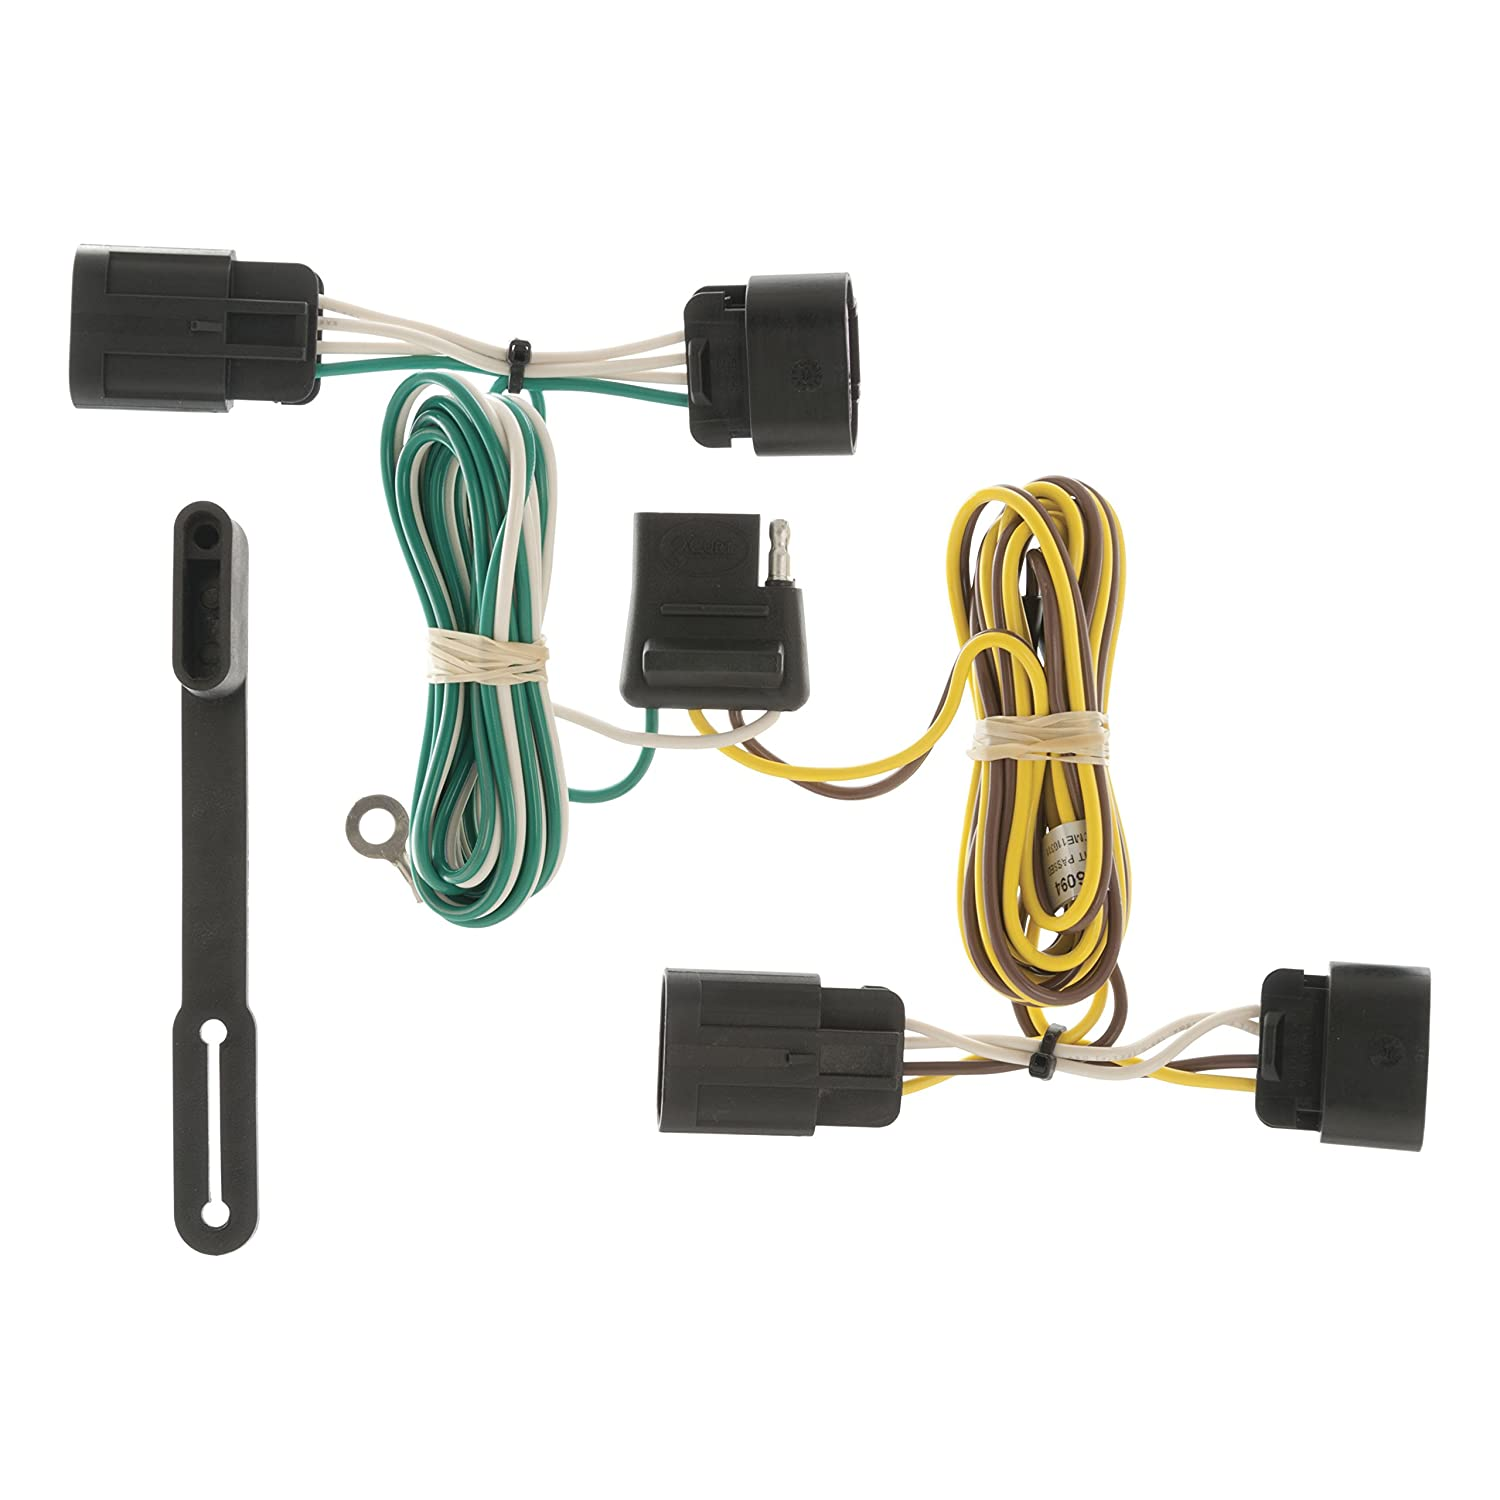 Amazon.com: CURT Class 3 Trailer Hitch Bundle with Wiring for Chevrolet  Equinox, GMC Terrain - 13591 & 56094: Automotive